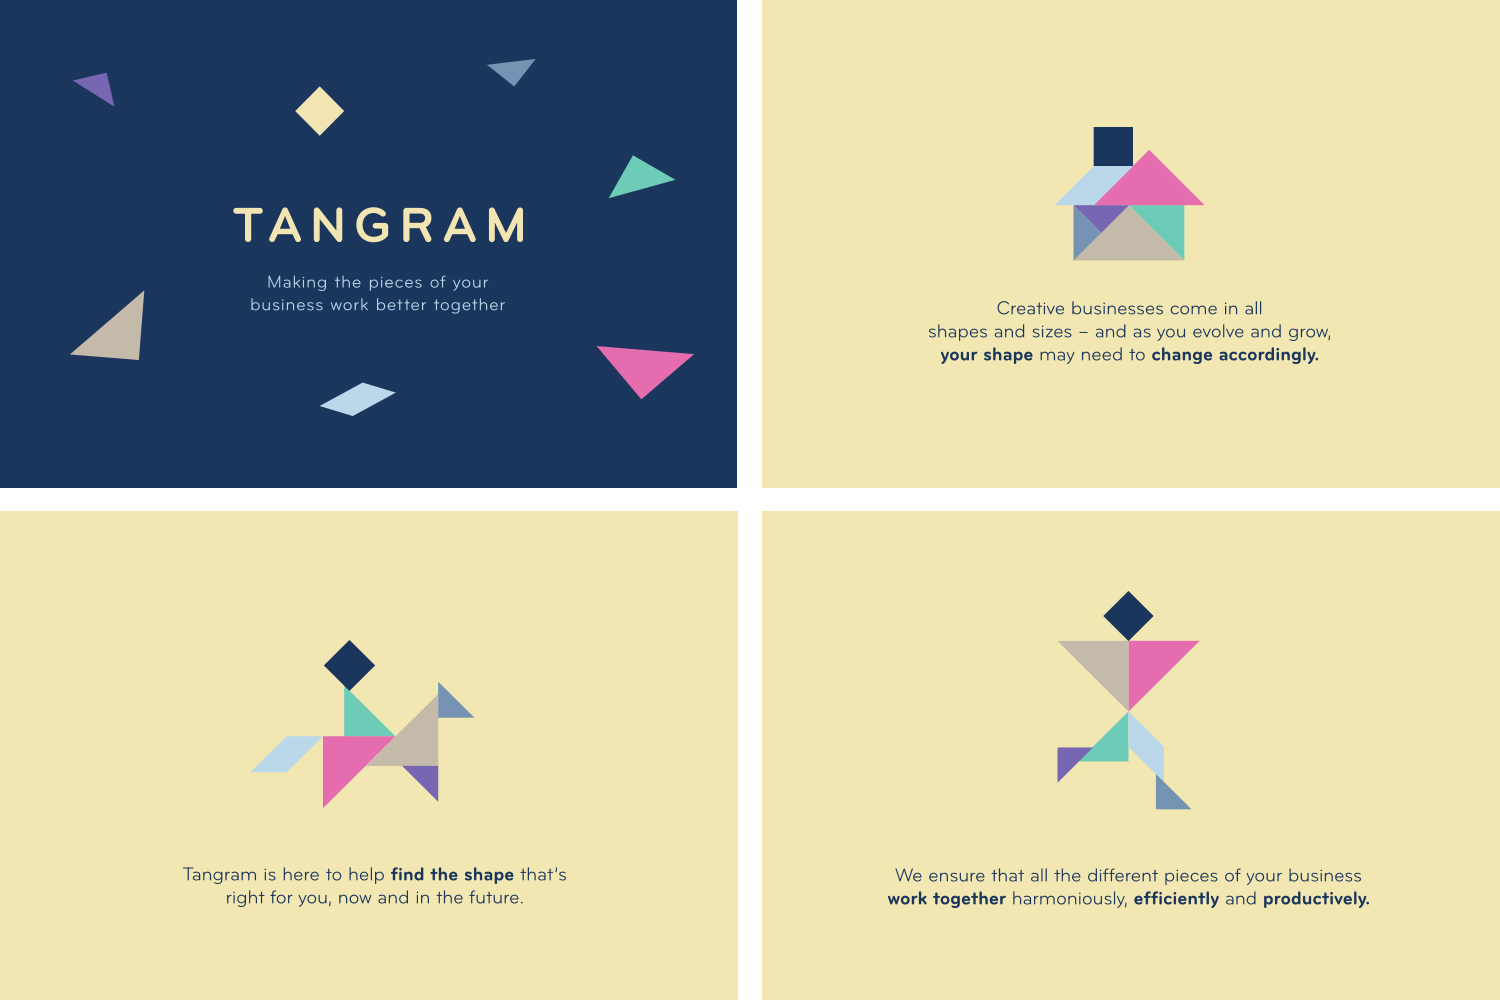 Tangram Consulting Business Introduction and Process Overview Diagrams